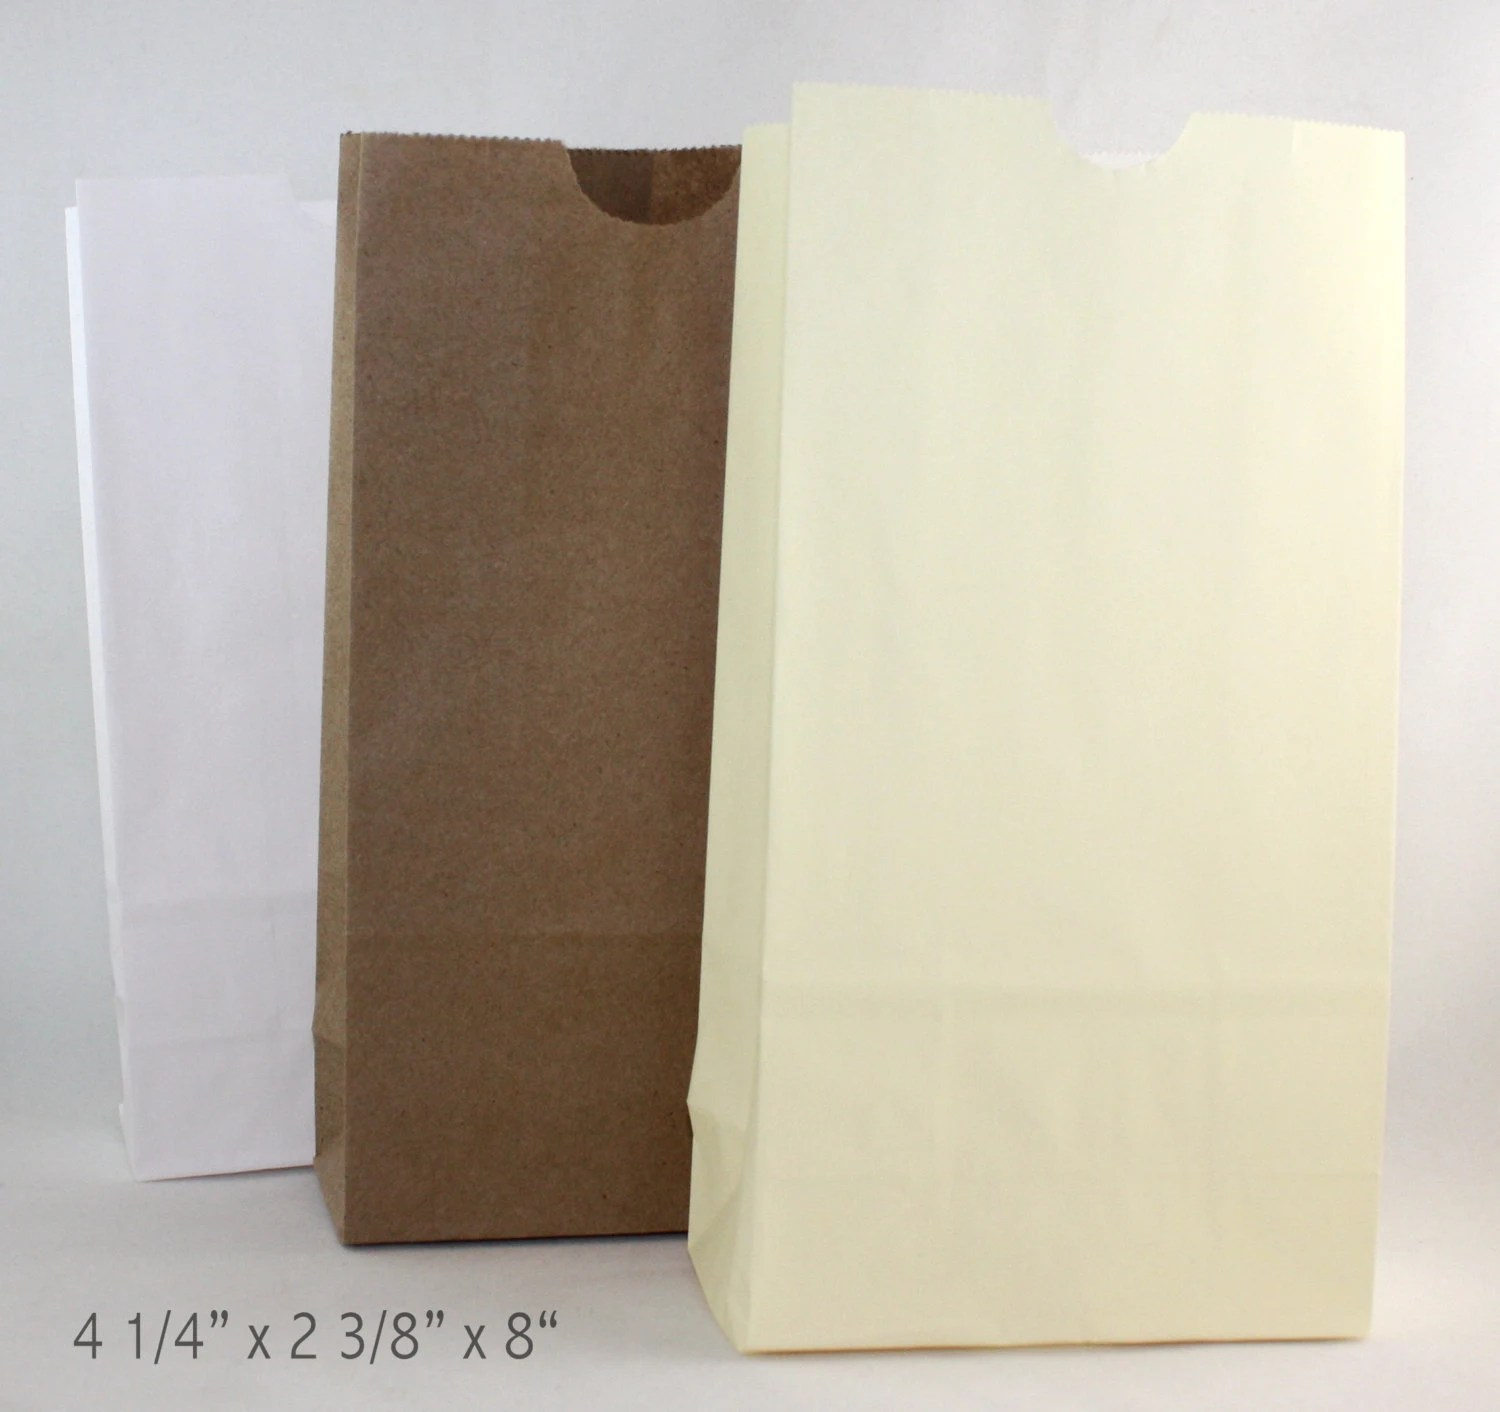 Flat Bottom Paper Bags 3 Color Choices 425 x 2 1/2 x 8 Etsy